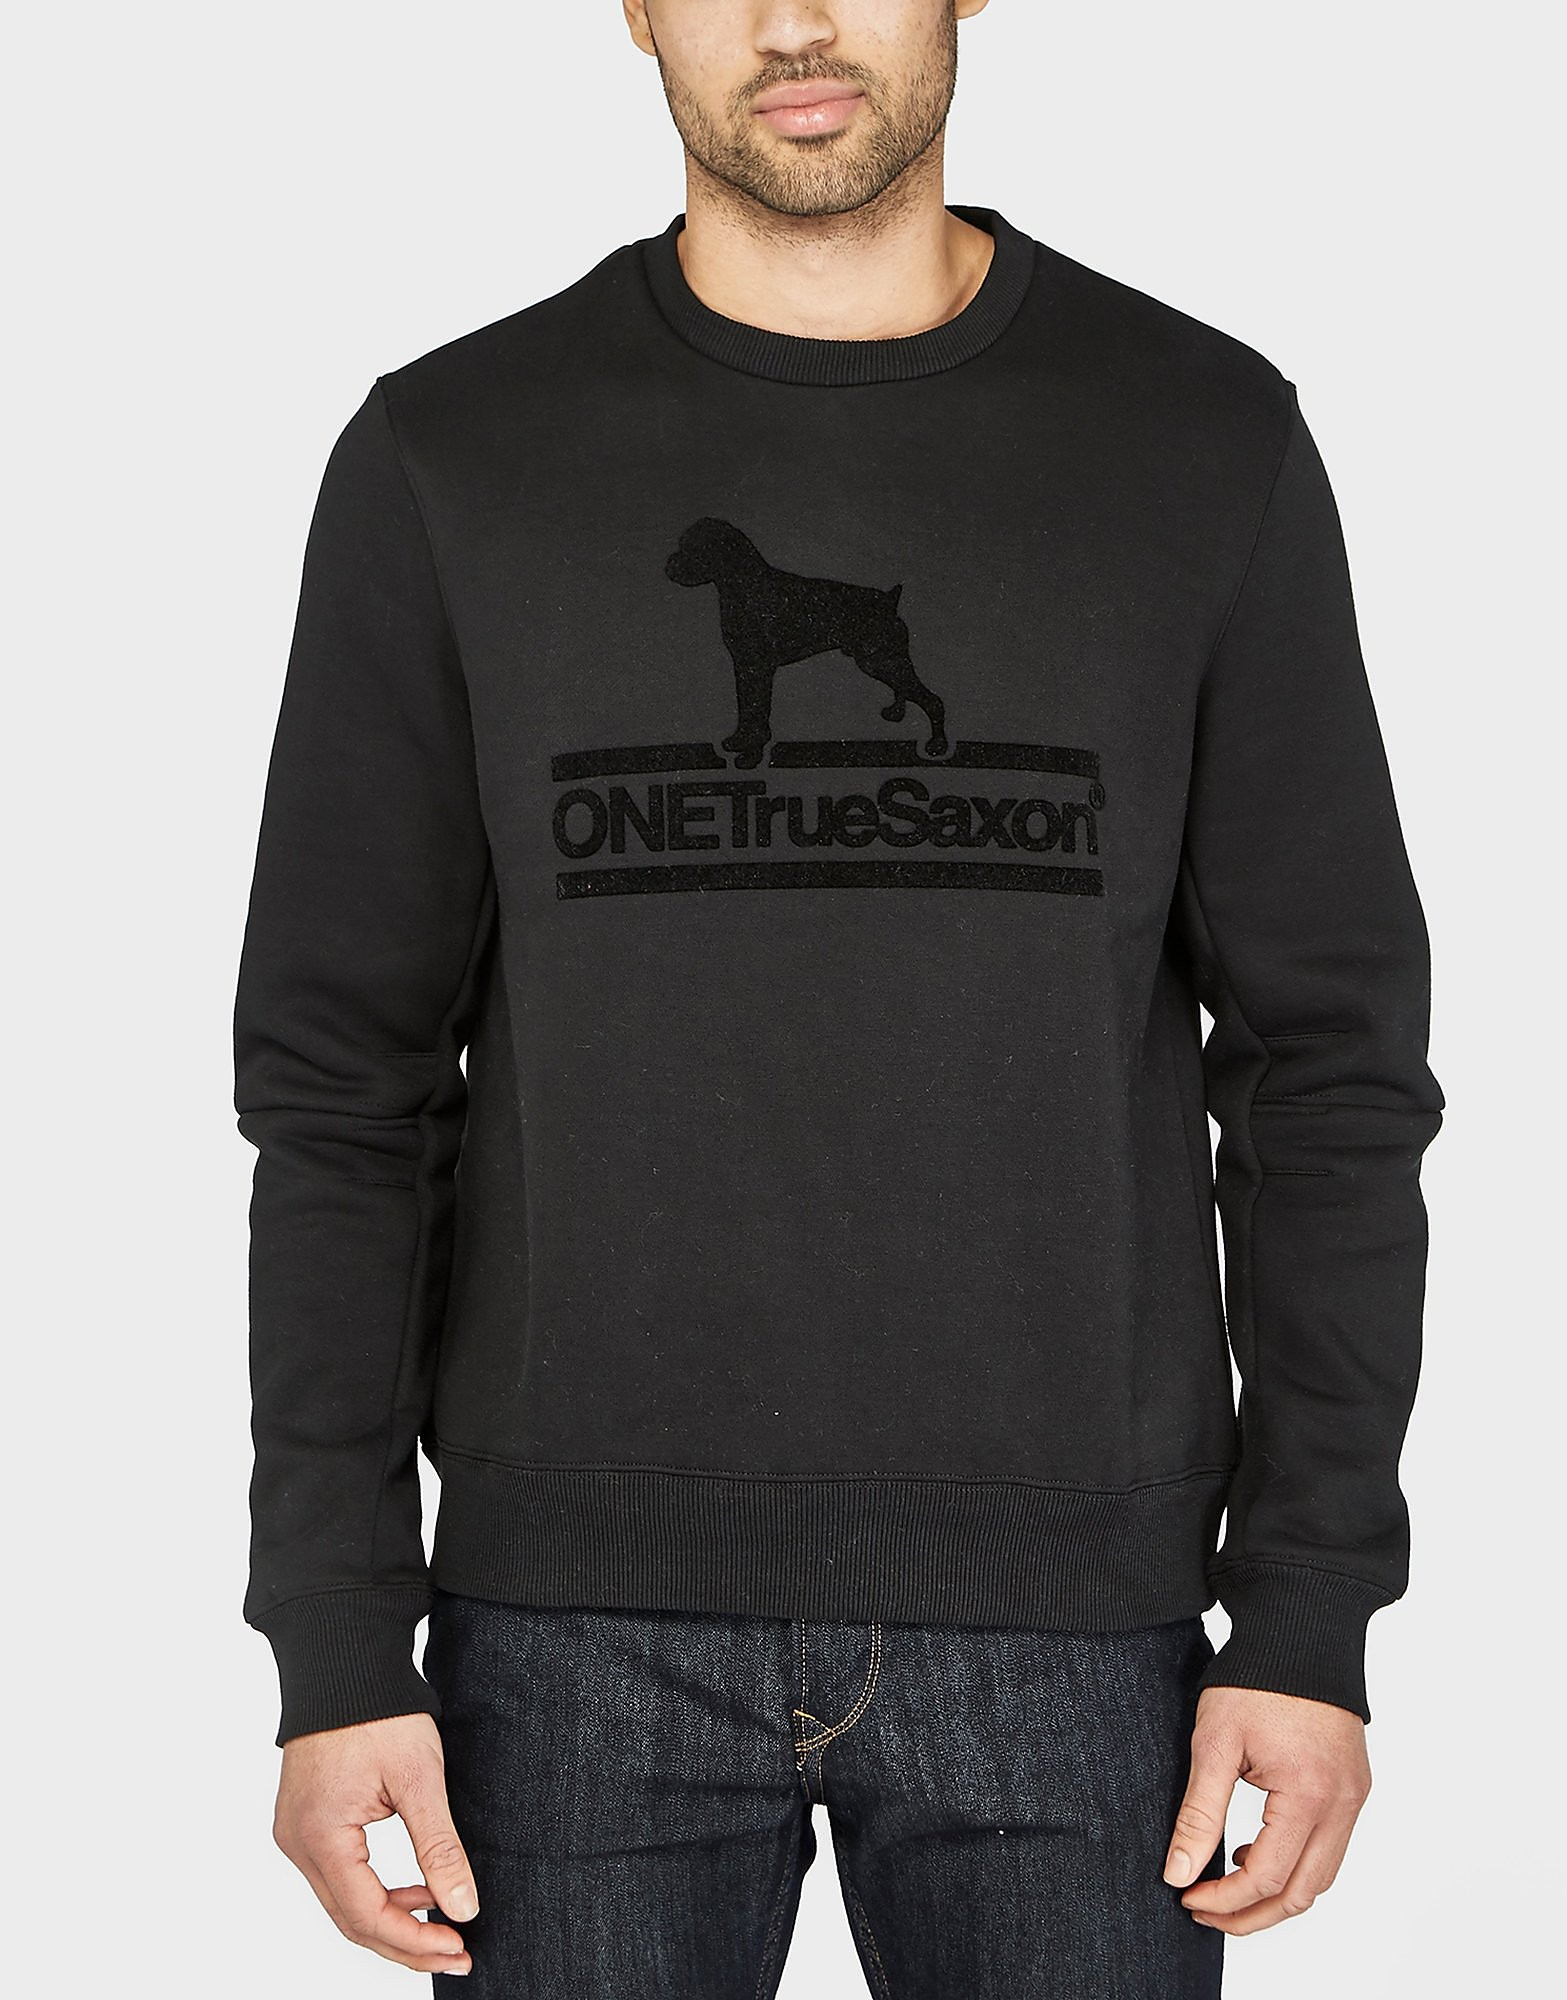 One True Saxon Envoy Crew Sweatshirt - Exclusive